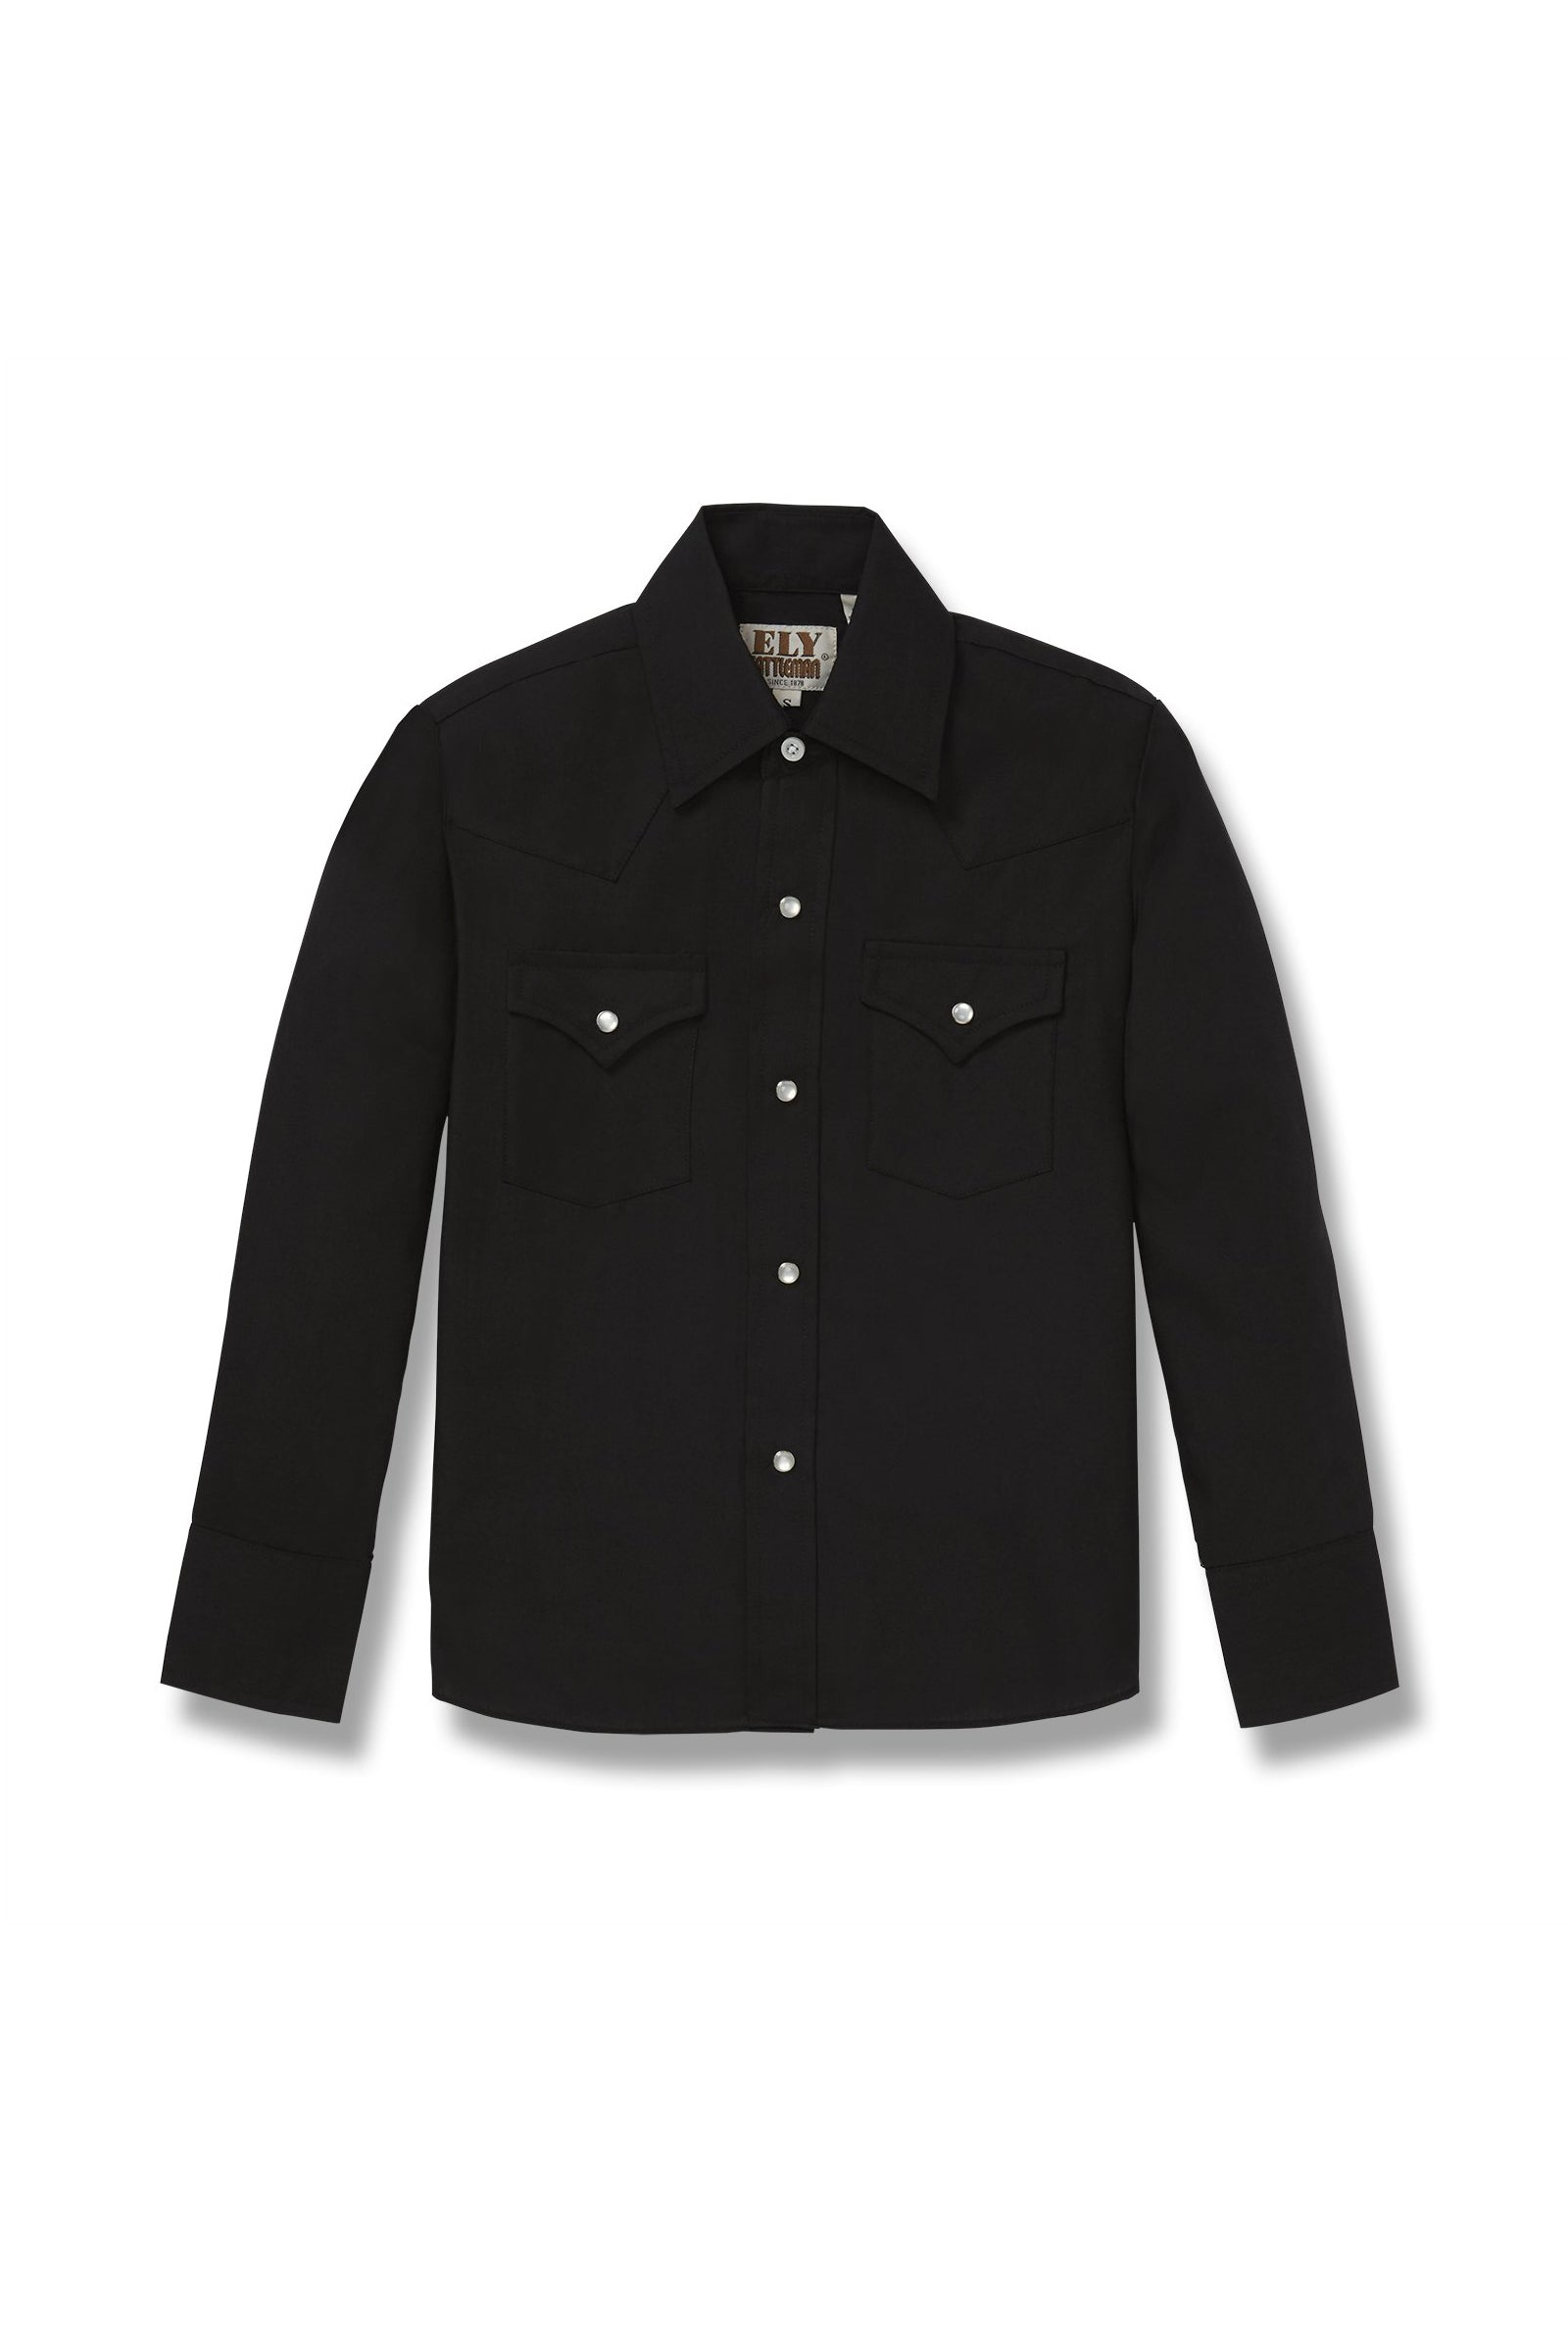 Boy's Long Sleeve Western Shirt in Black | Ely Cattleman